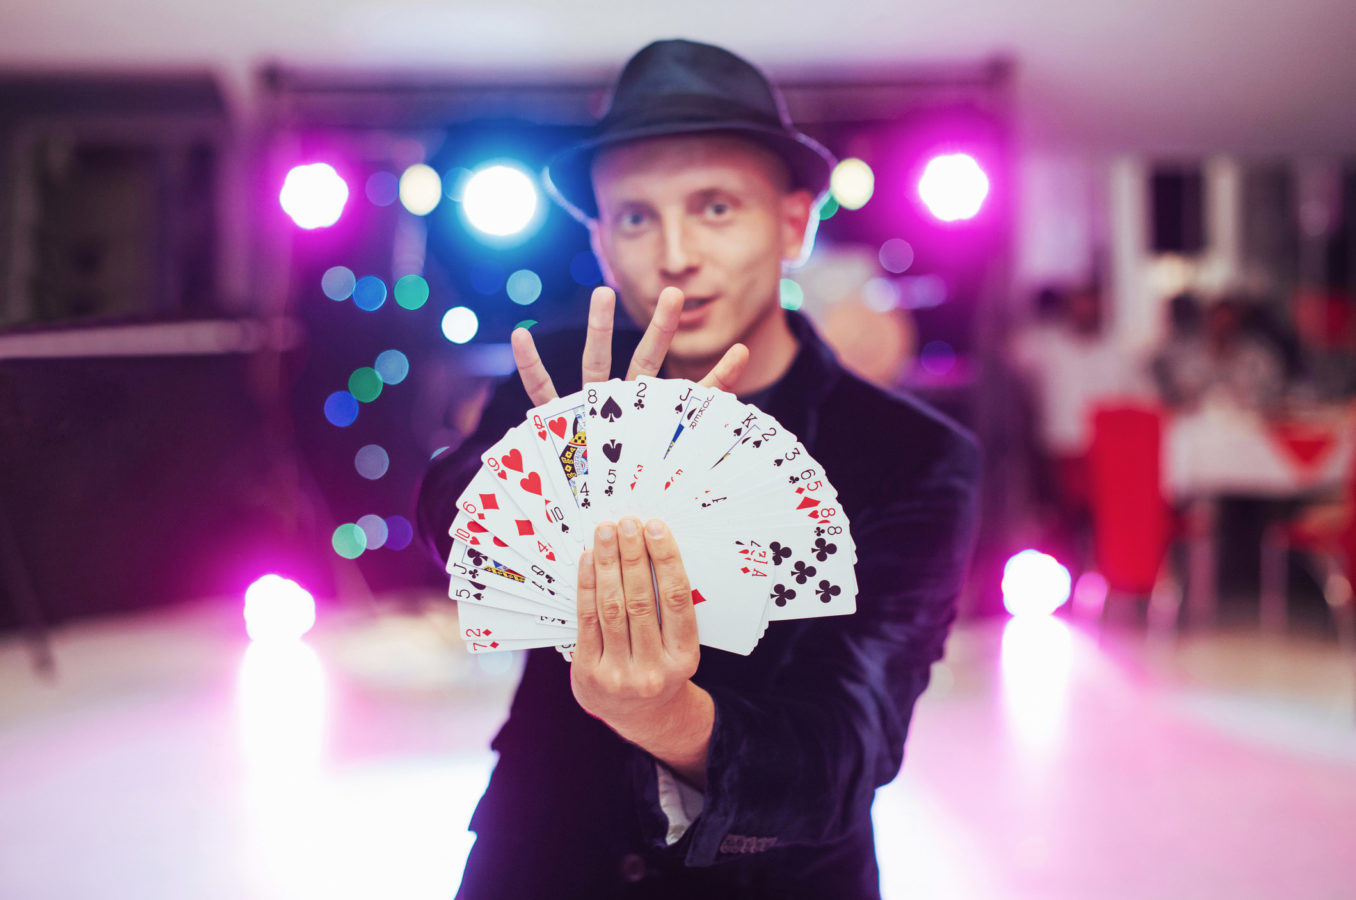 The psychology of learning and magic